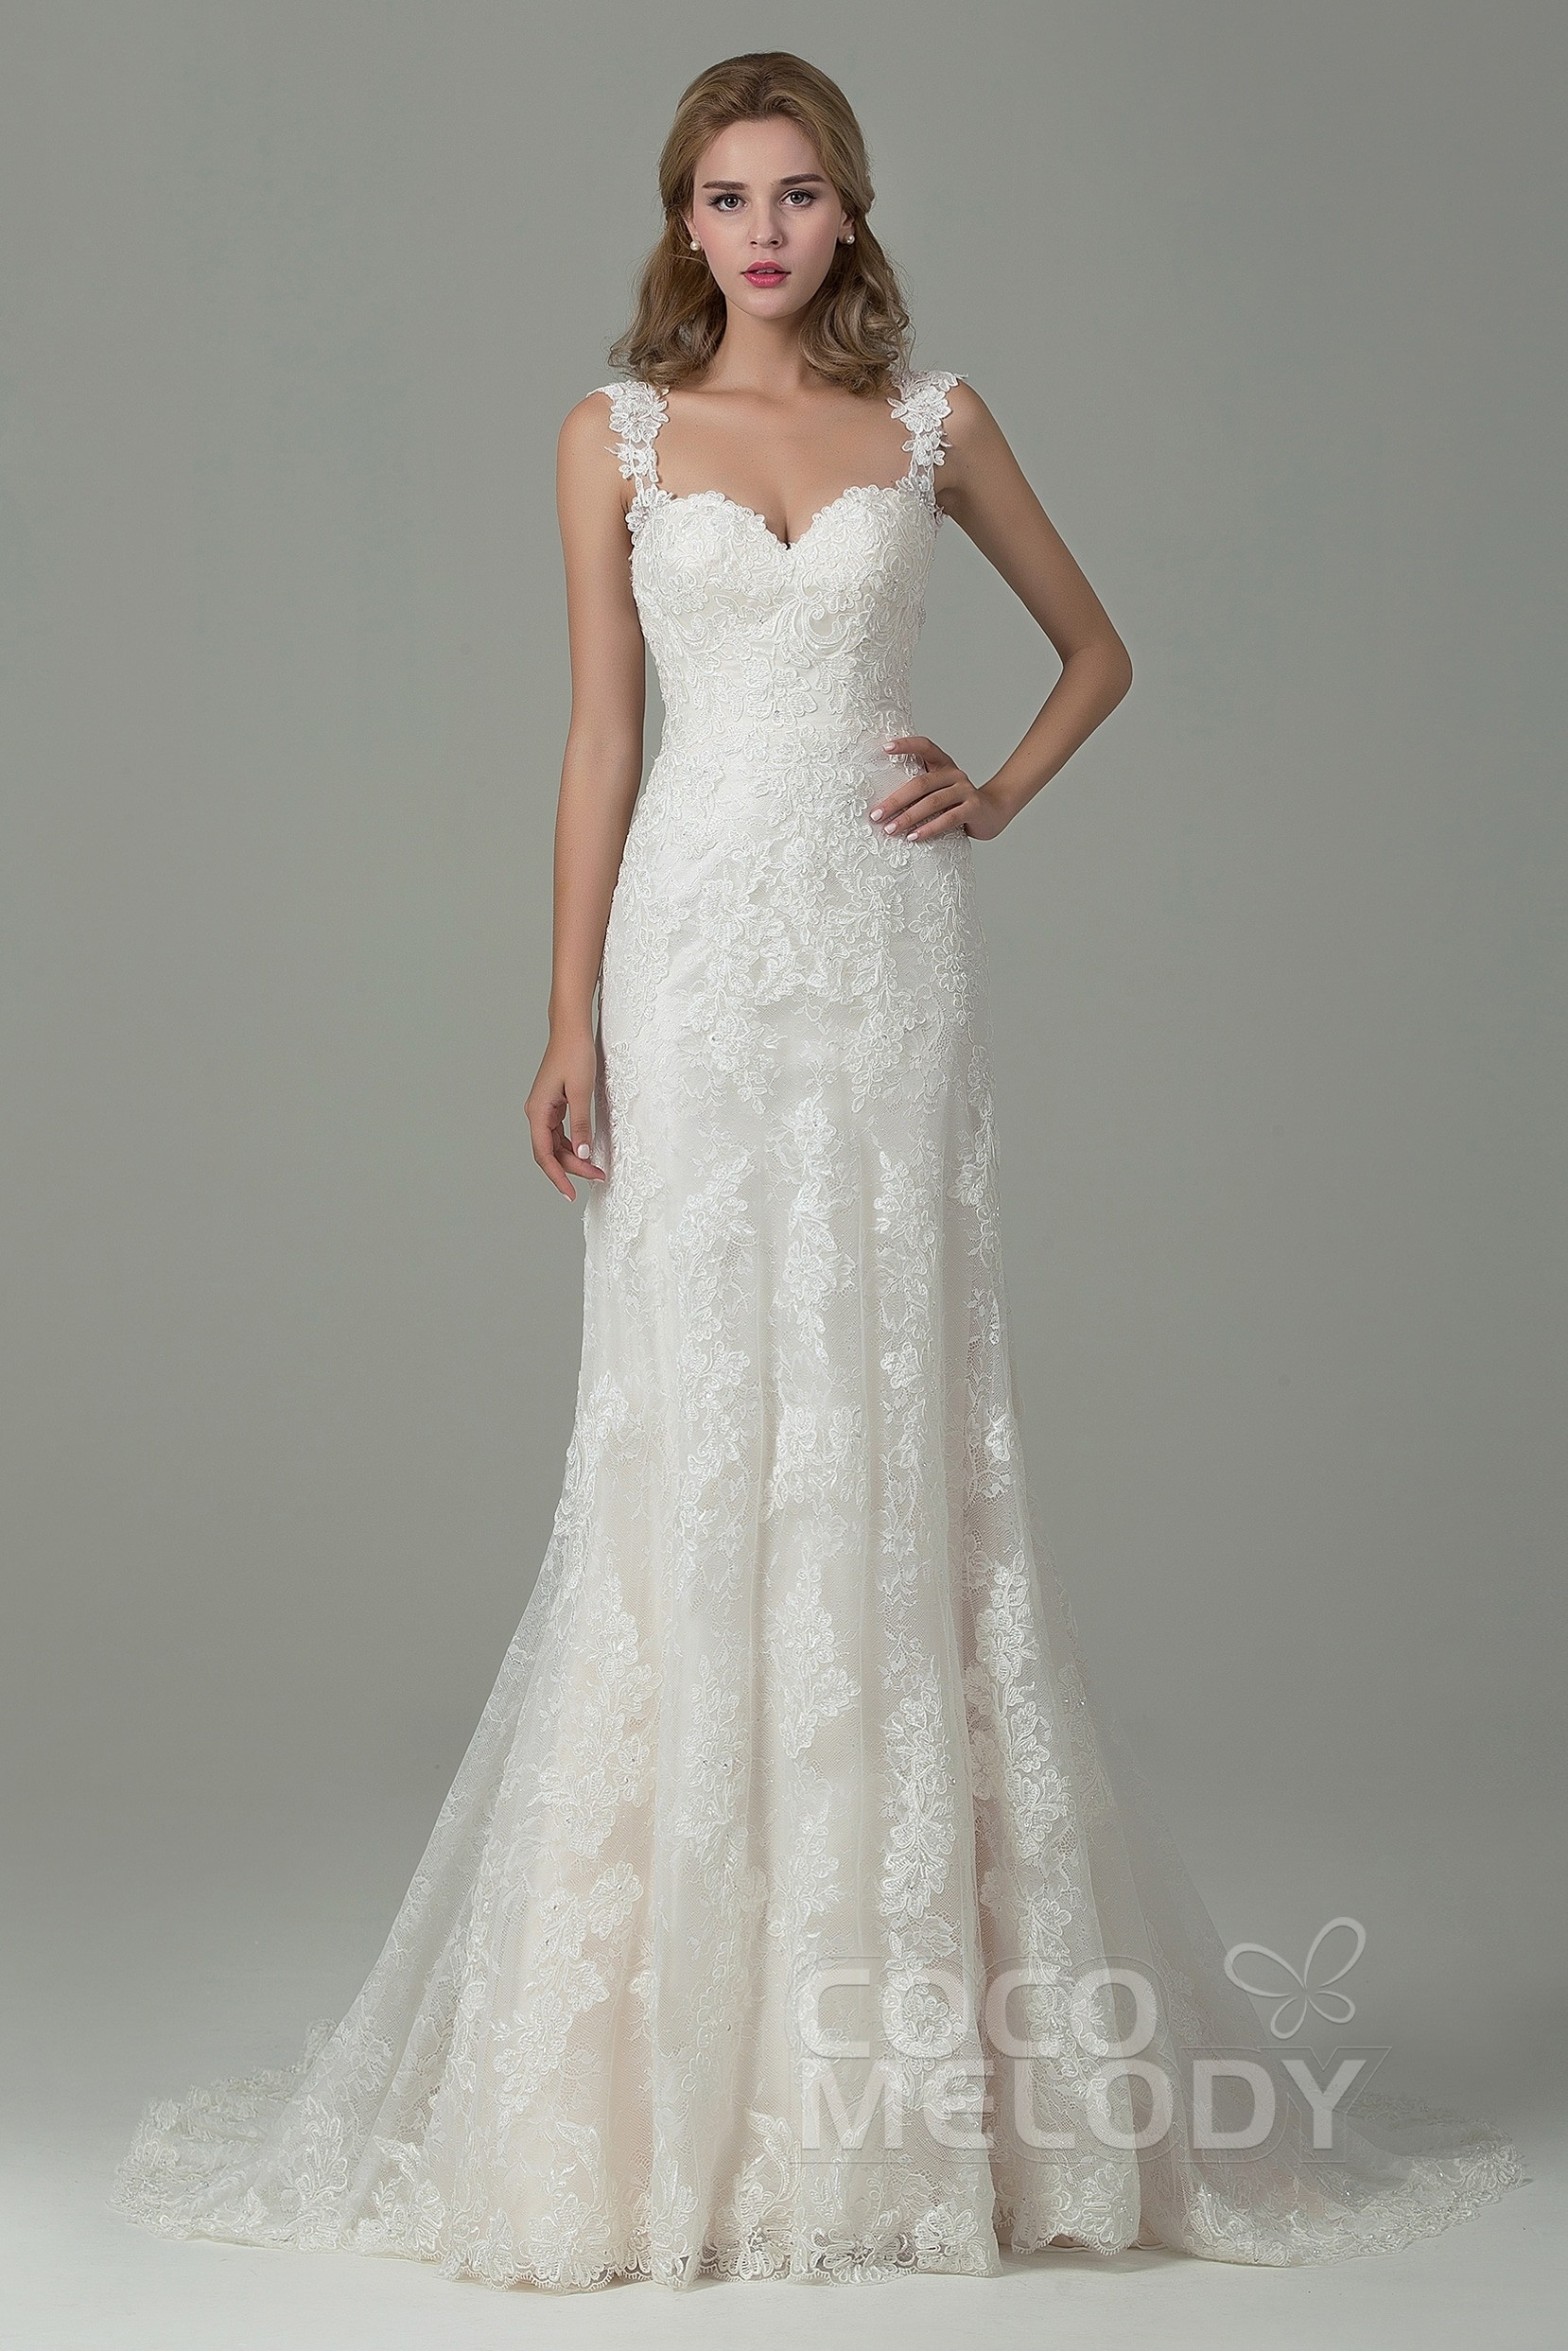 Sheath-Column Straps Court Train Wedding Dress CWVT15002 | Cocomelody